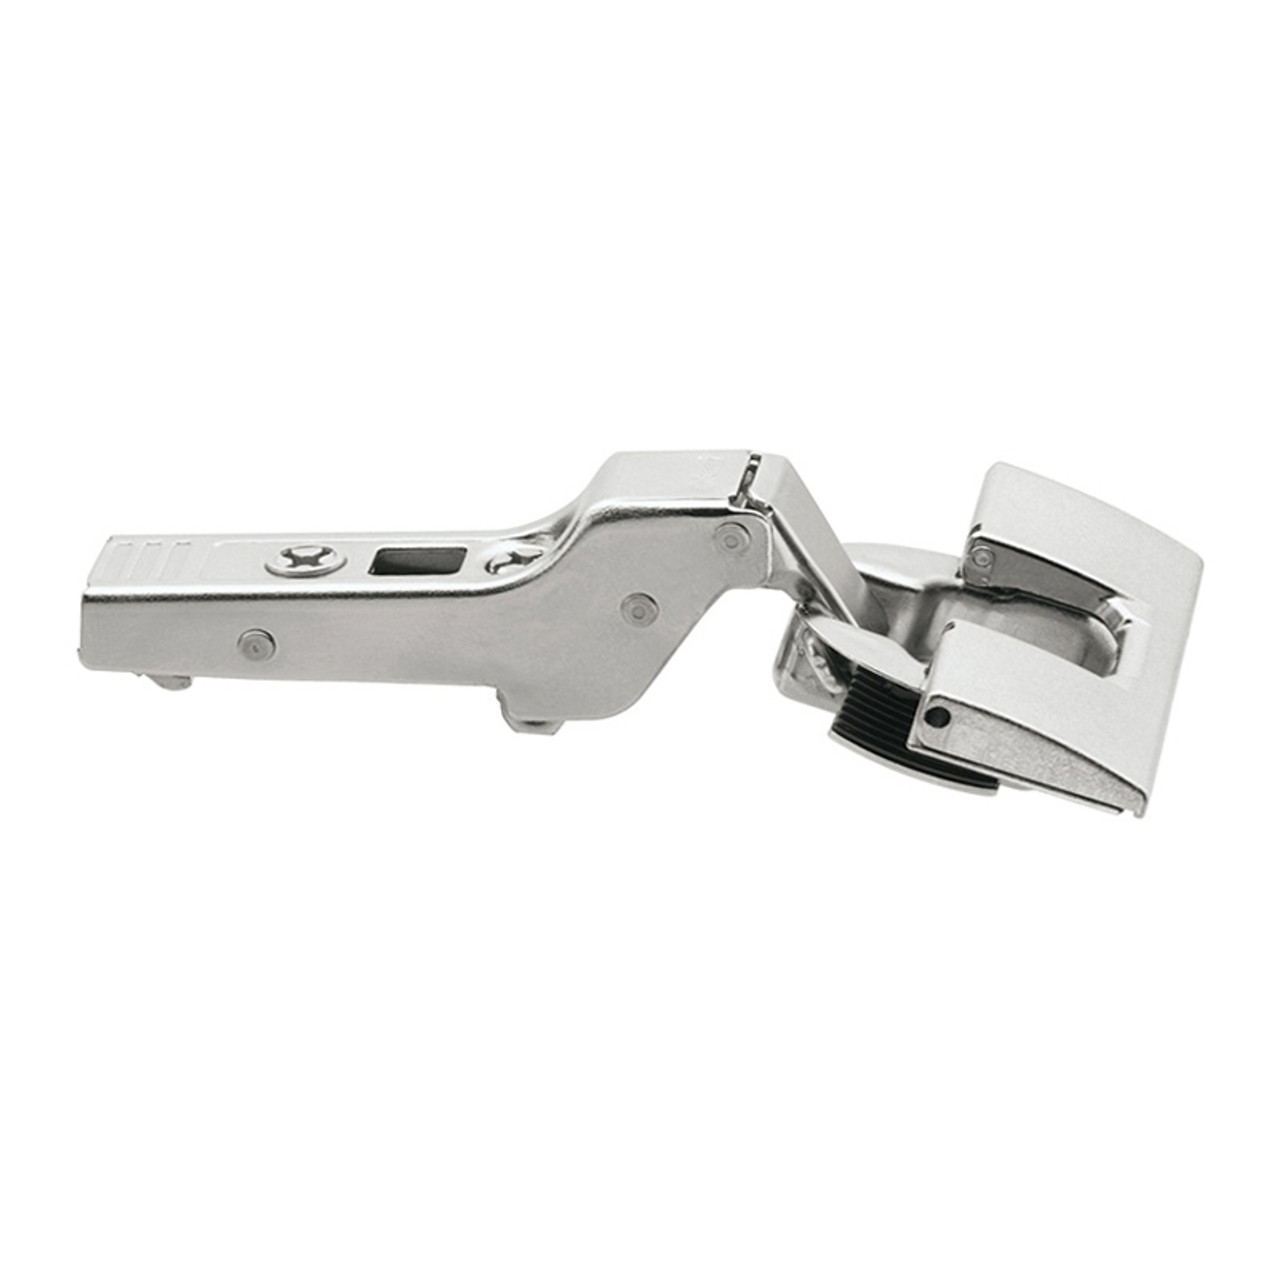 107° CLIP top INSERTA Unsprung Hinge - Dual